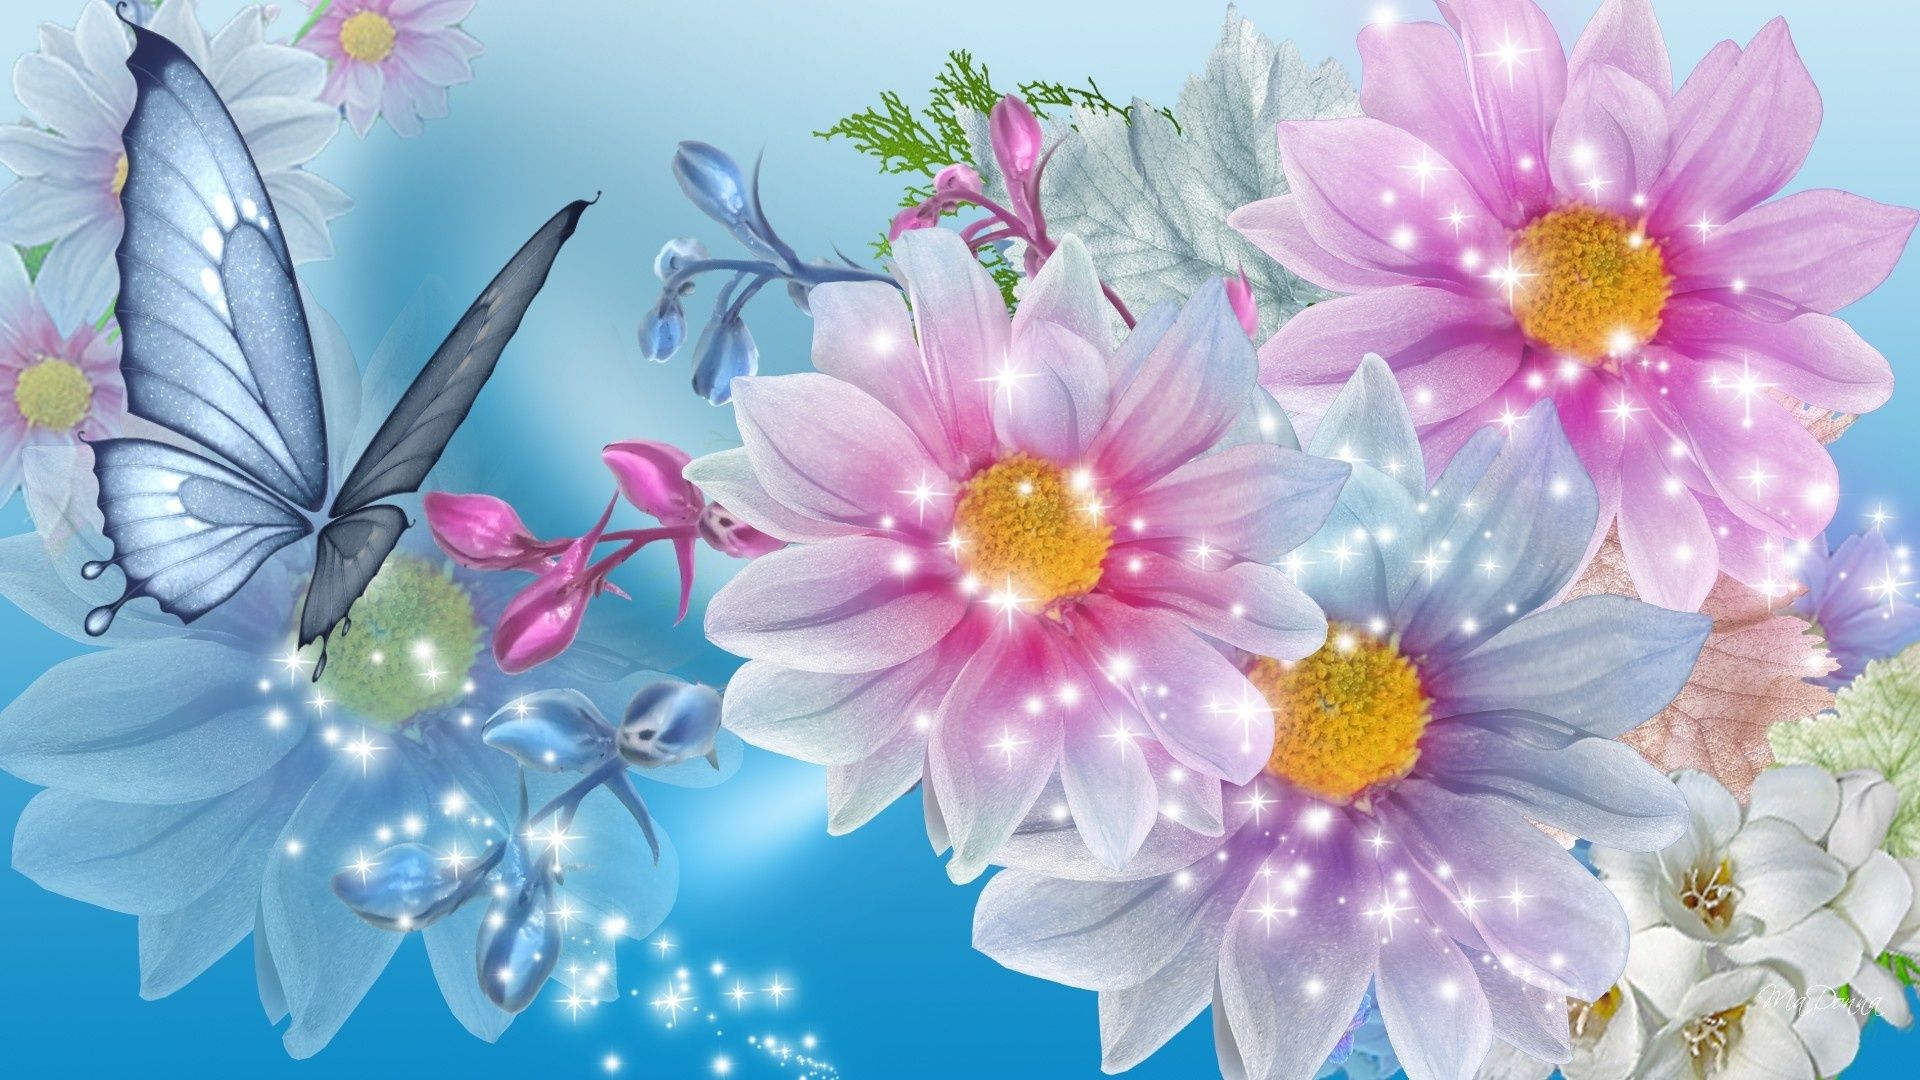 Flower wallpaper images pic13a3 hd flores pinterest flower flower wallpaper images pic13a3 hd mightylinksfo